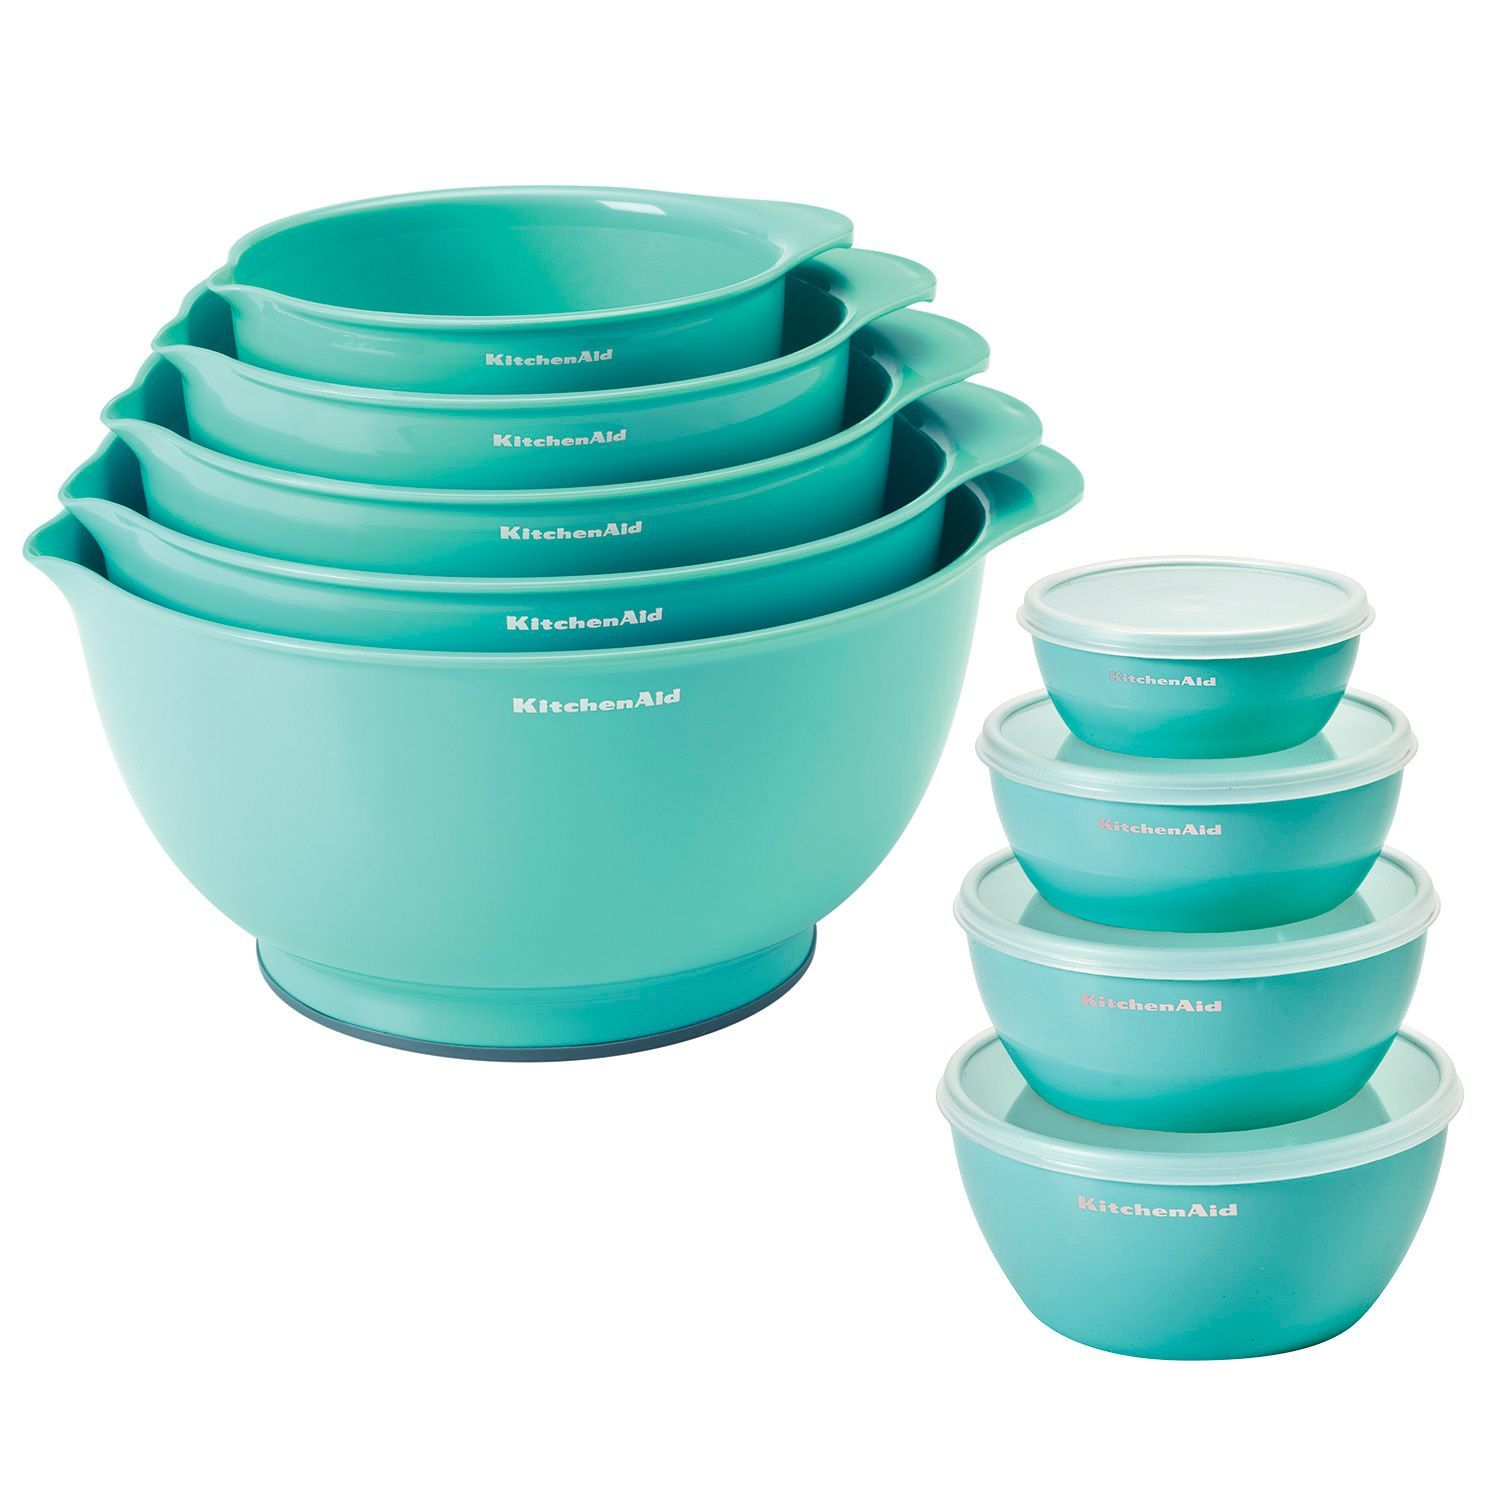 KitchenAid Mixing Bowls & Prep Bowls 13-Piece Set (Assorted Colors ...